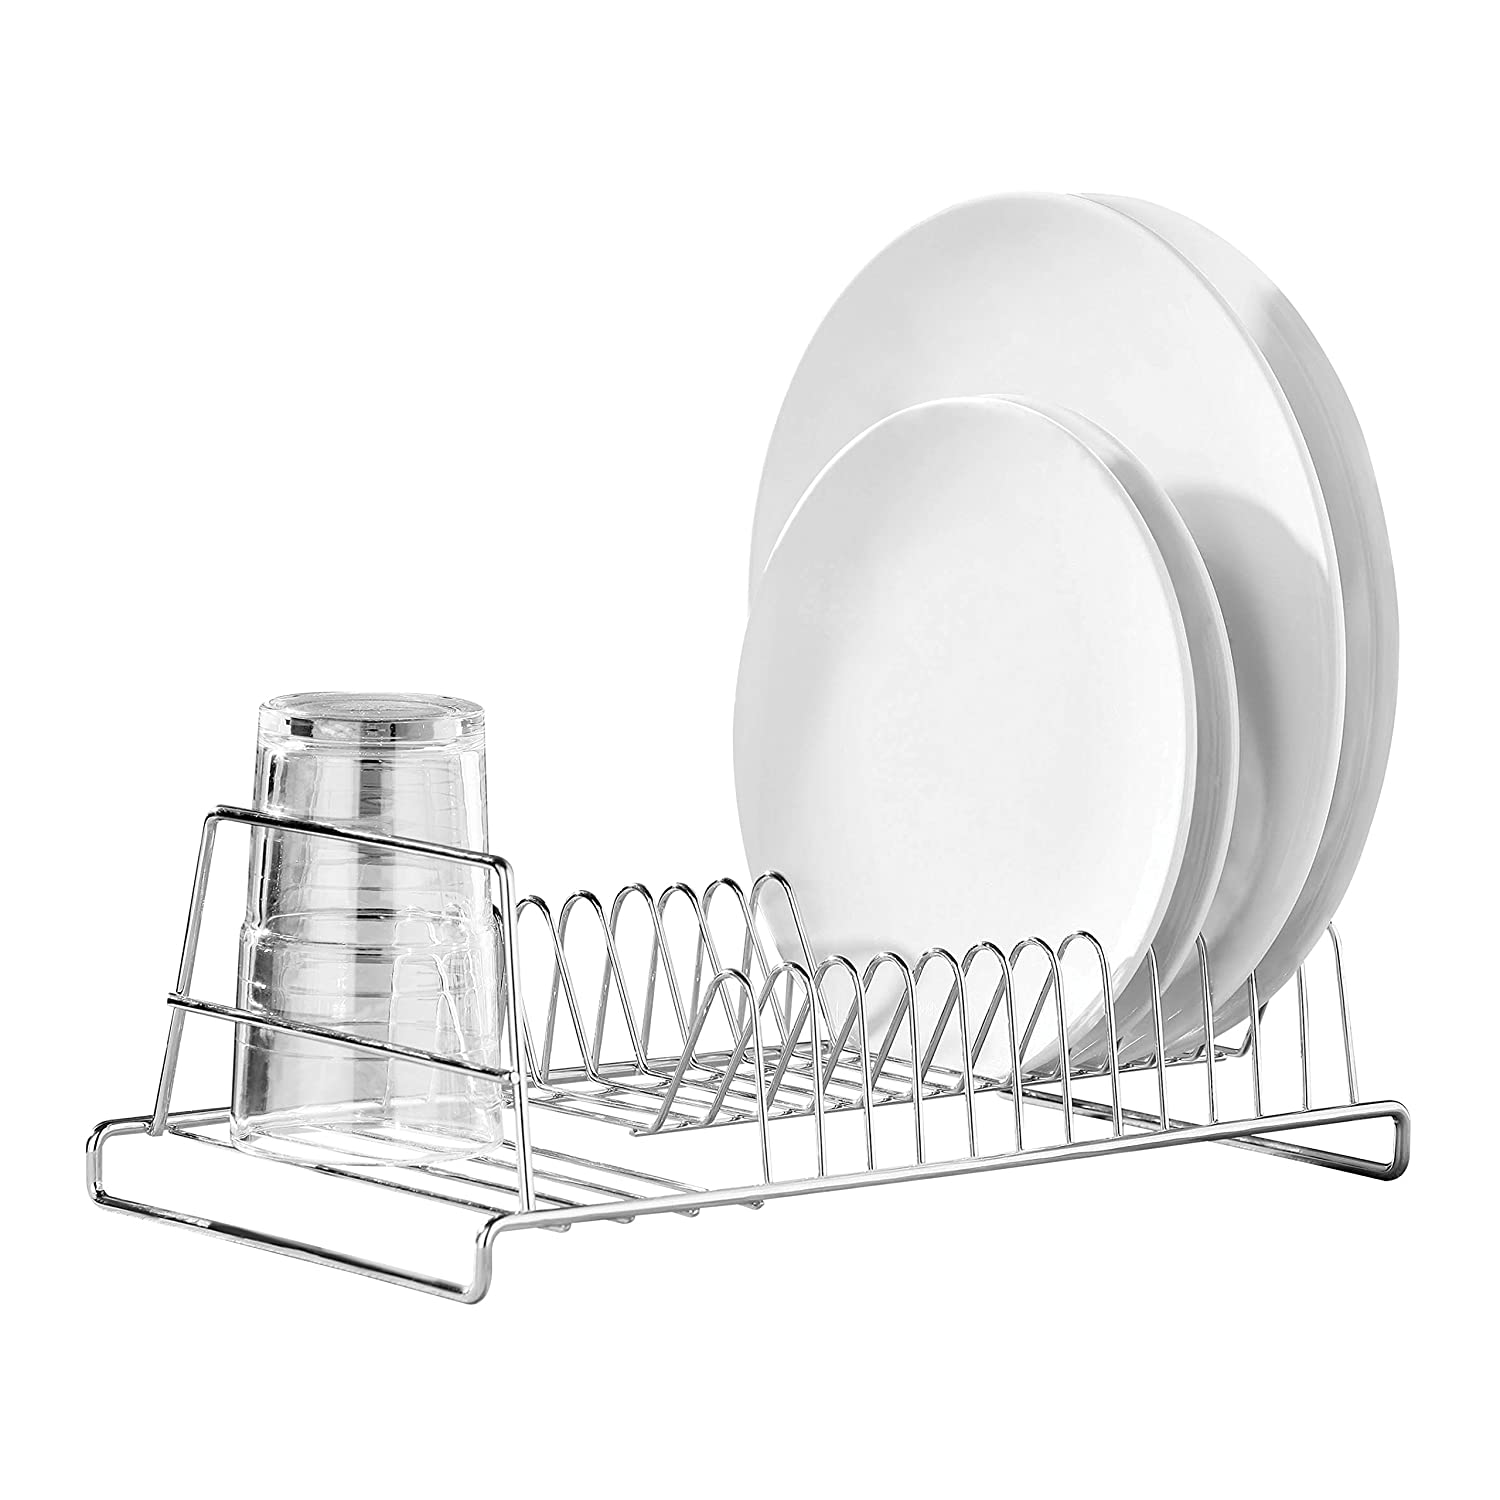 Geschirr Abtropf Top 10 Best Dish Drying Racks Reviews 2016-2017 On